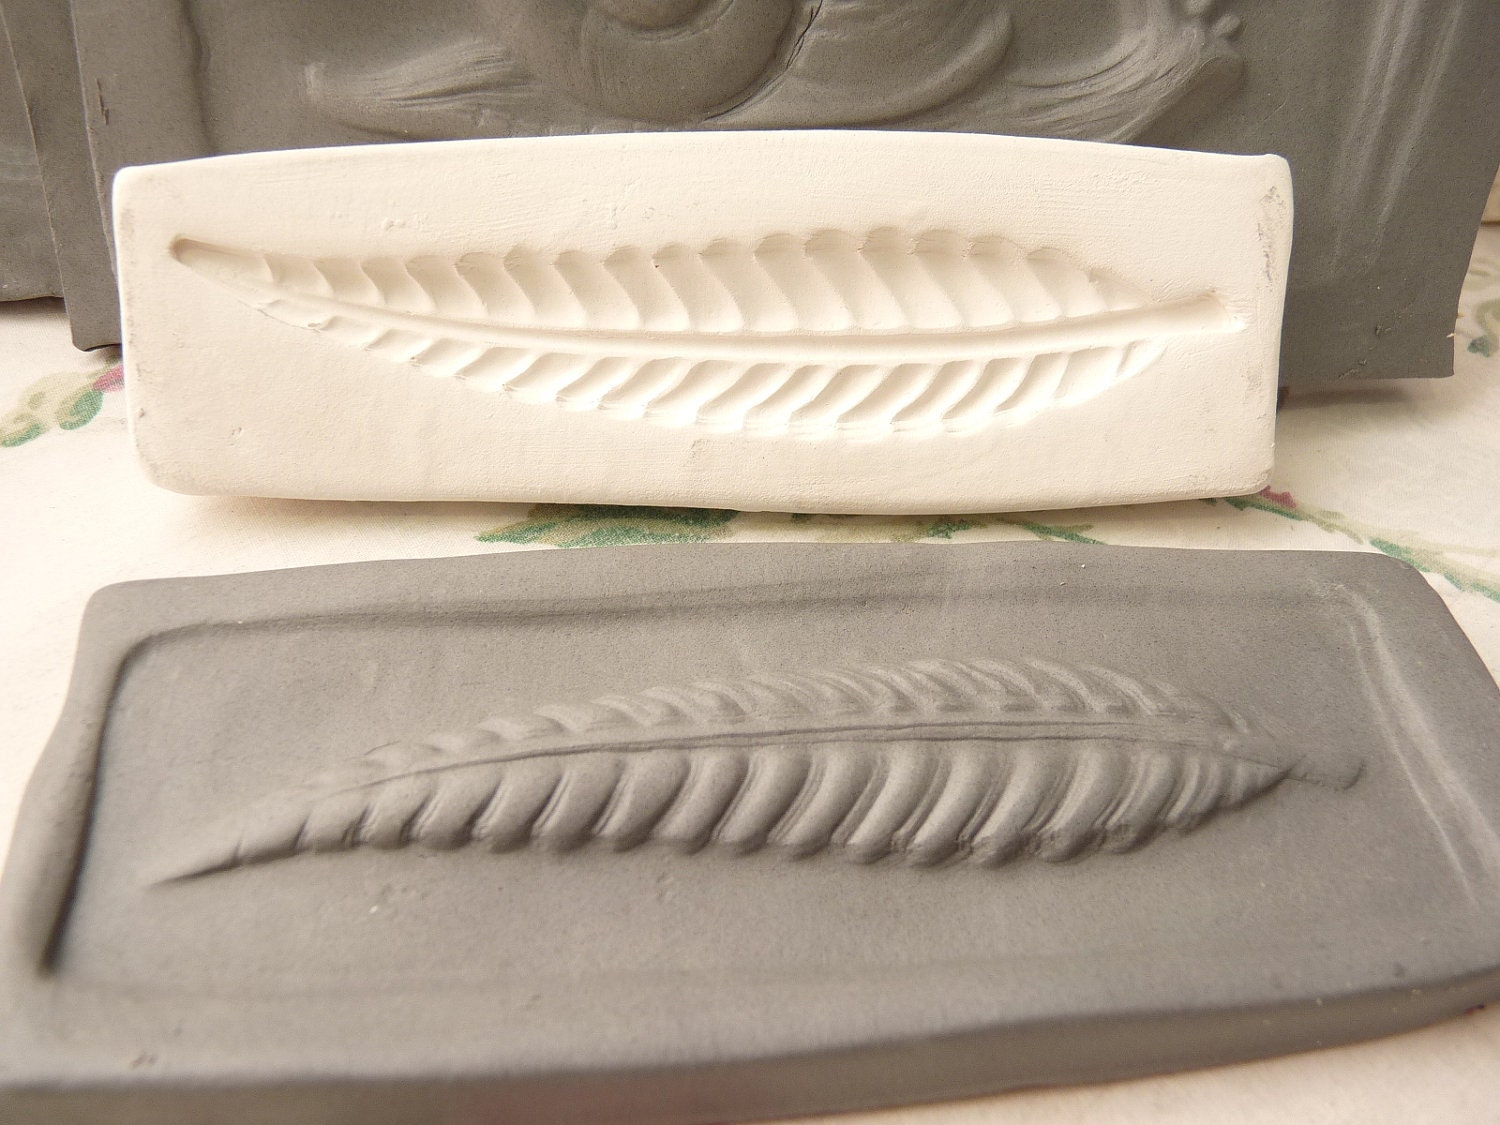 Clay Stamp Leaf Press Mold Relief Mold Or Sprig Mold Bisque